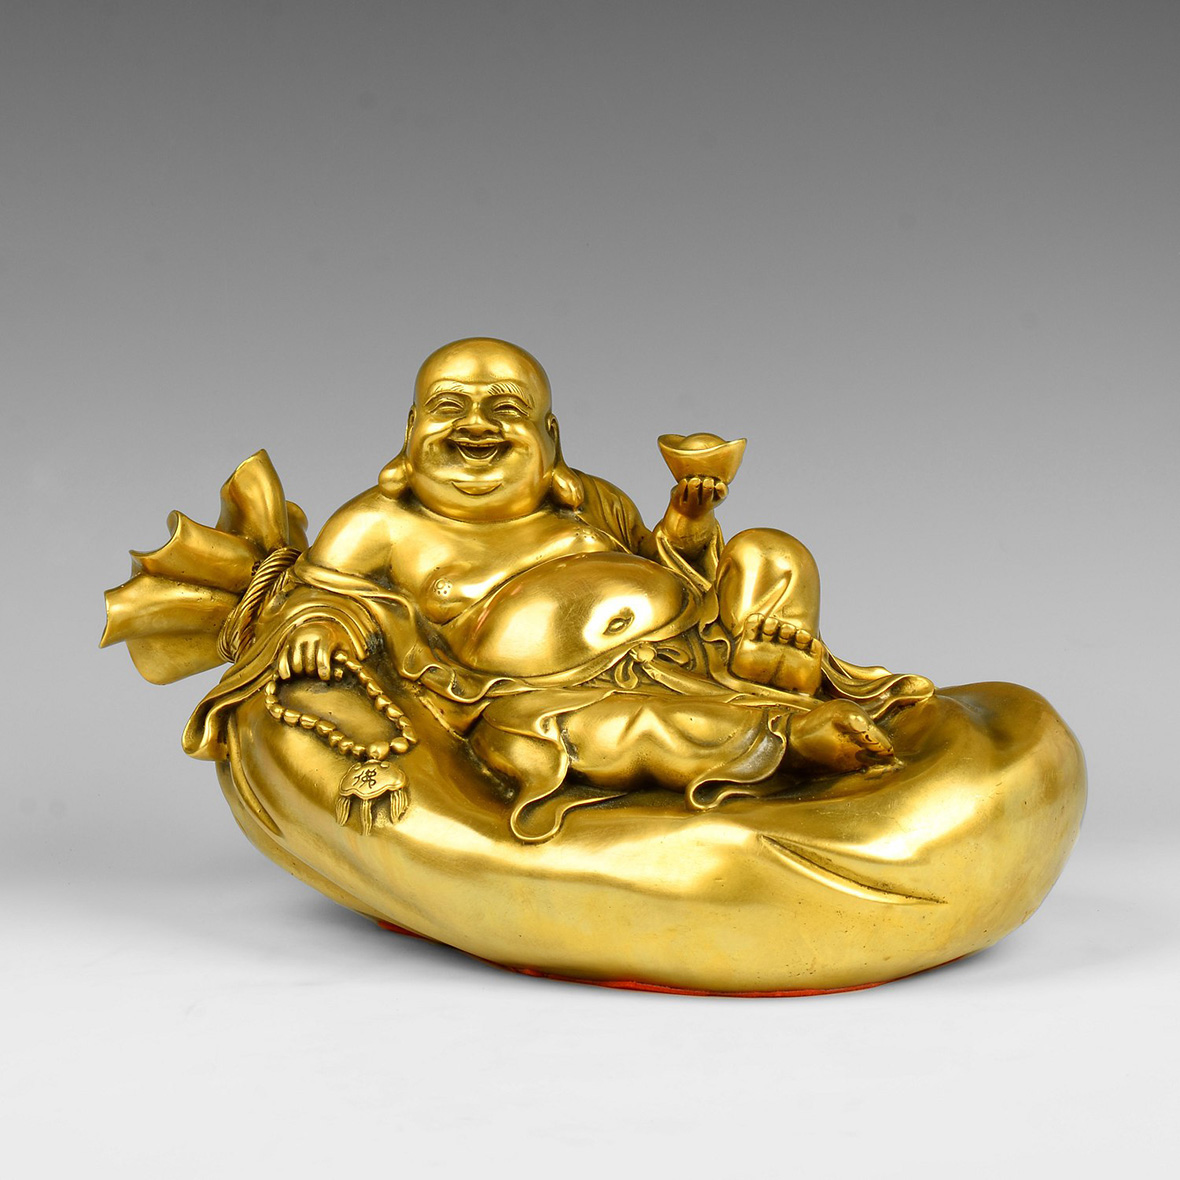 Times talented pure copper gold bag laughing buddha maitreya buddha ornaments lucky feng shui living room den home decorations